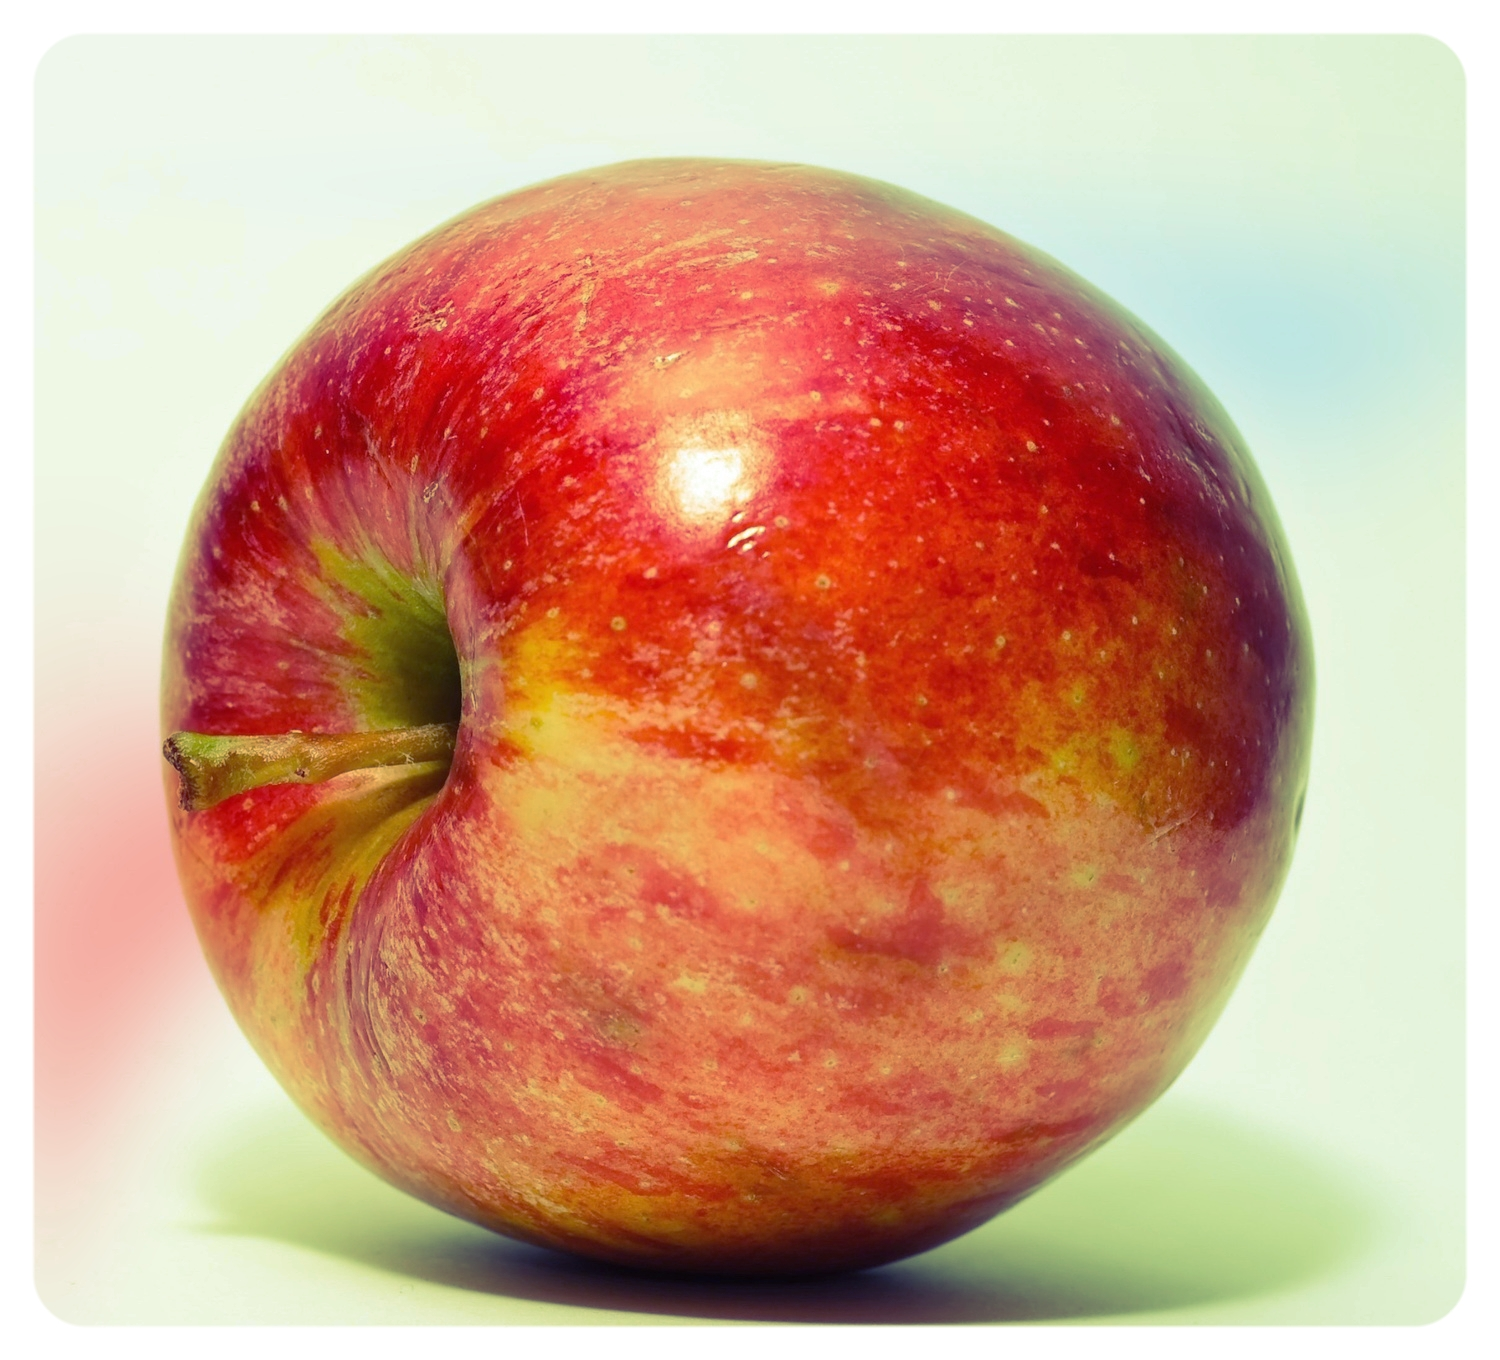 The form essentially dictates that this must be an apple